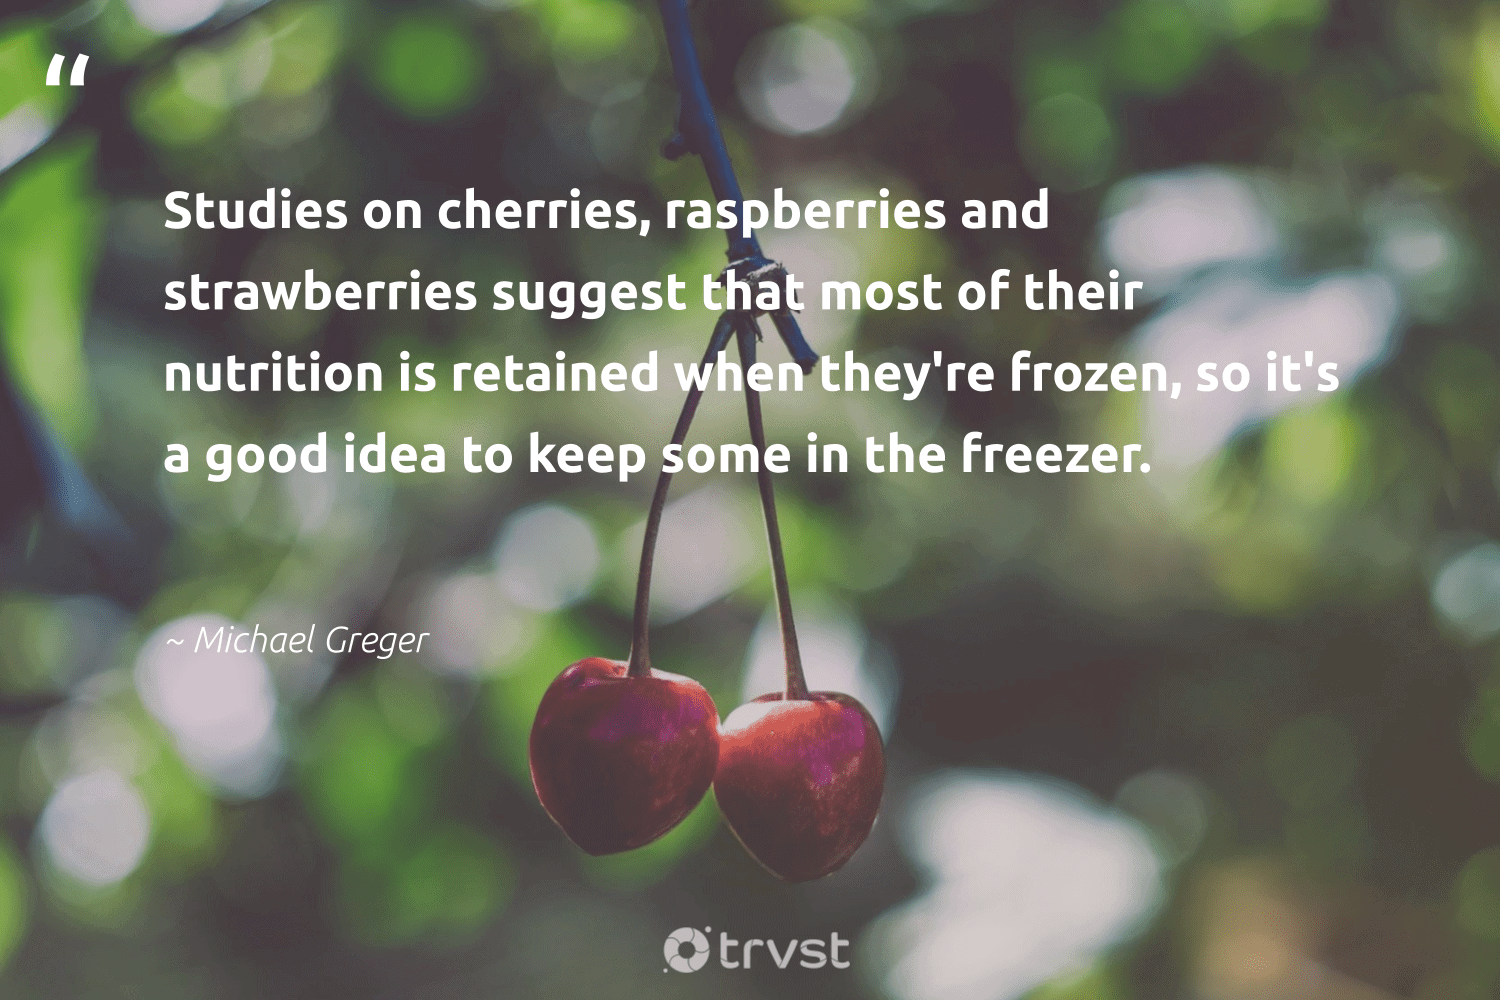 """""""Studies on cherries, raspberries and strawberries suggest that most of their nutrition is retained when they're frozen, so it's a good idea to keep some in the freezer.""""  - Michael Greger #trvst #quotes #eatclean #nutrition #health #togetherwecan #dogood #healthyeating #nevergiveup #begreat #dosomething #balance"""